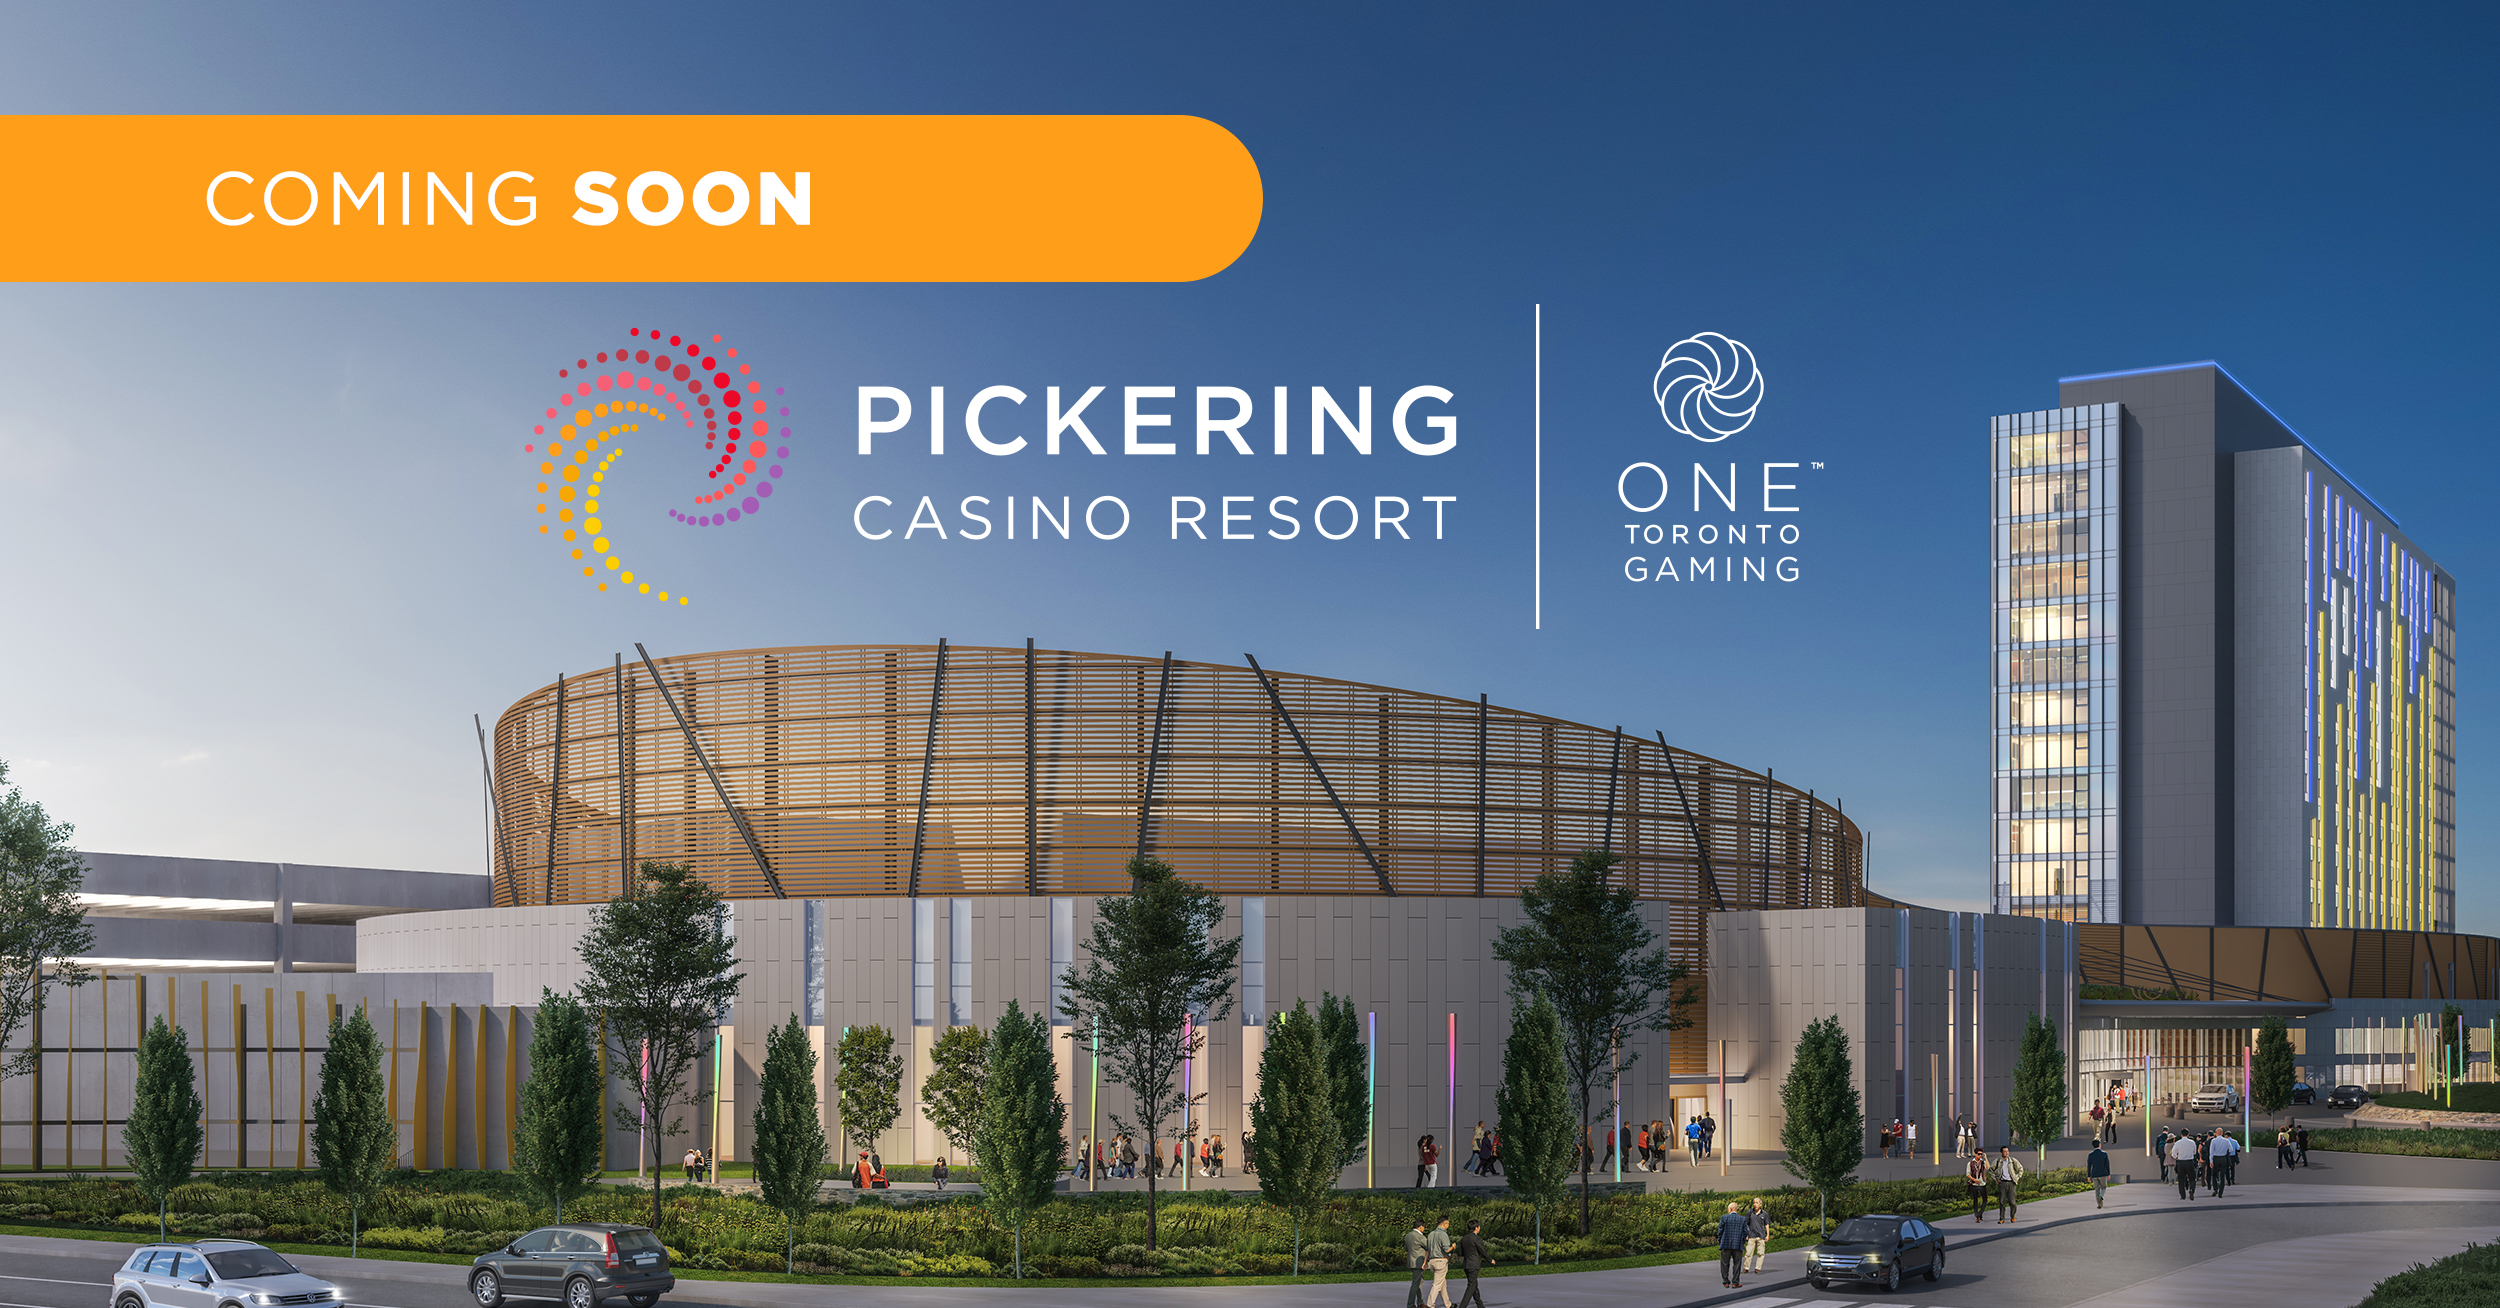 Pickering Casino Resort by One Toronto Gaming